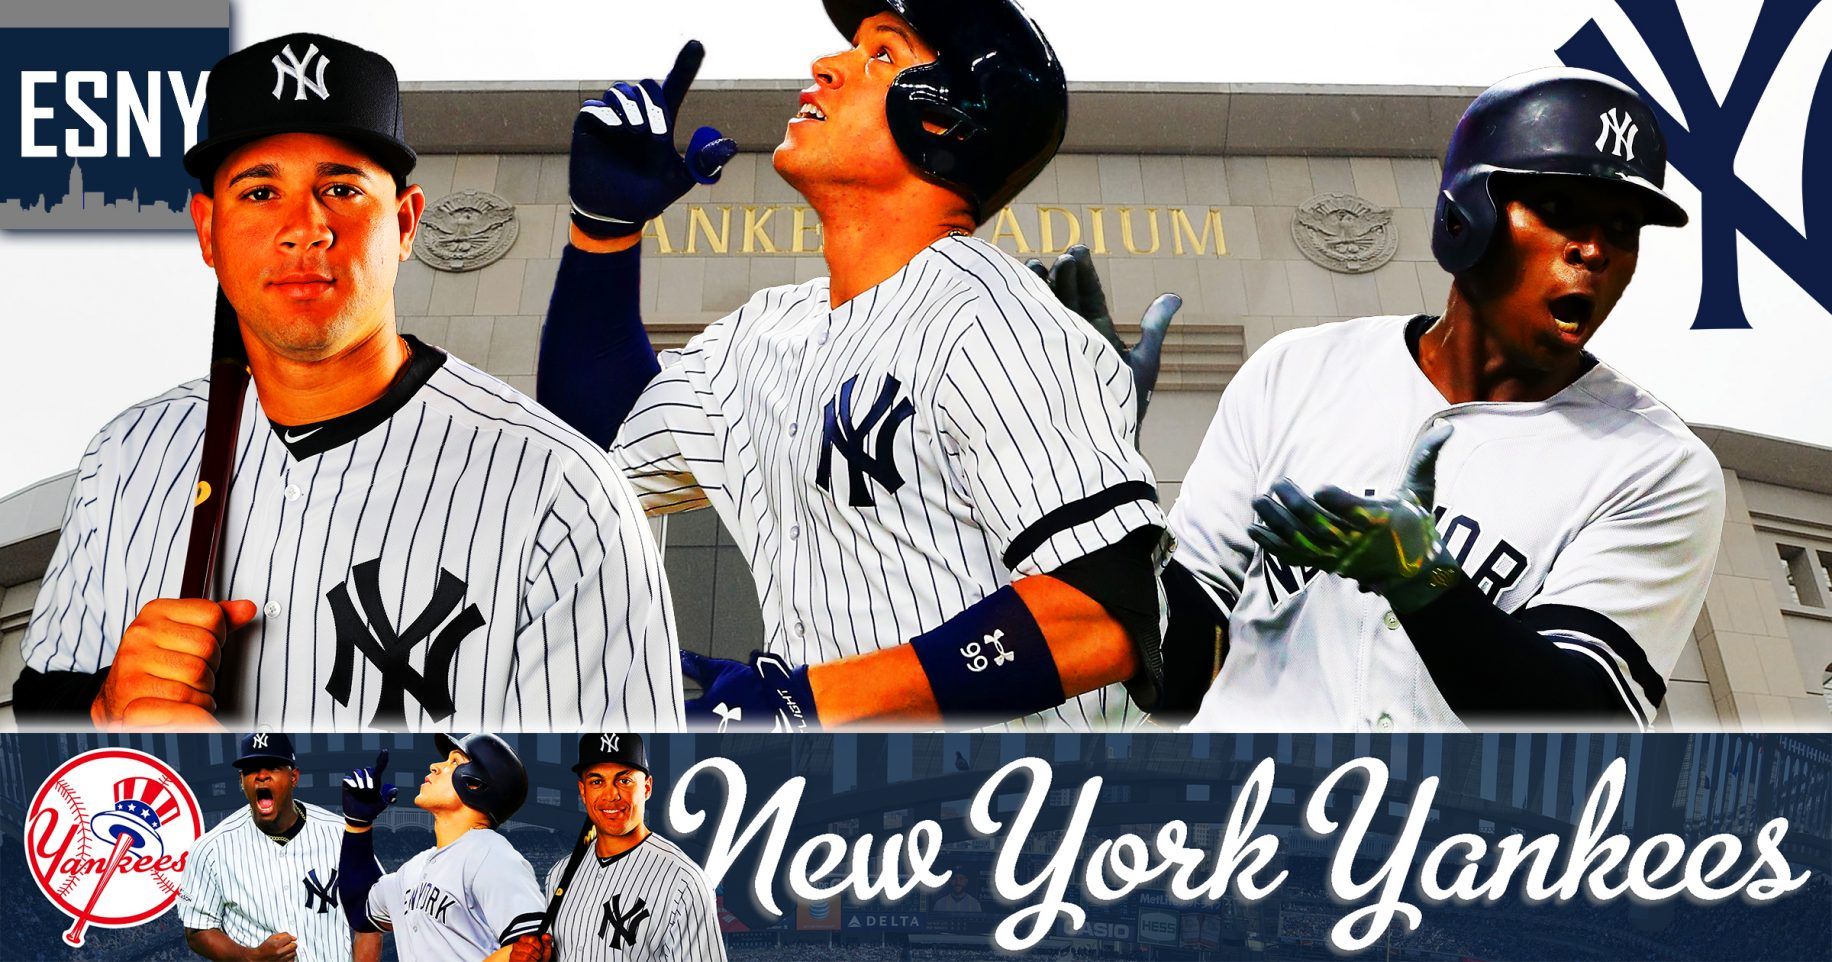 StubHub To Become New York Yankees' Official Ticket Resale Partner